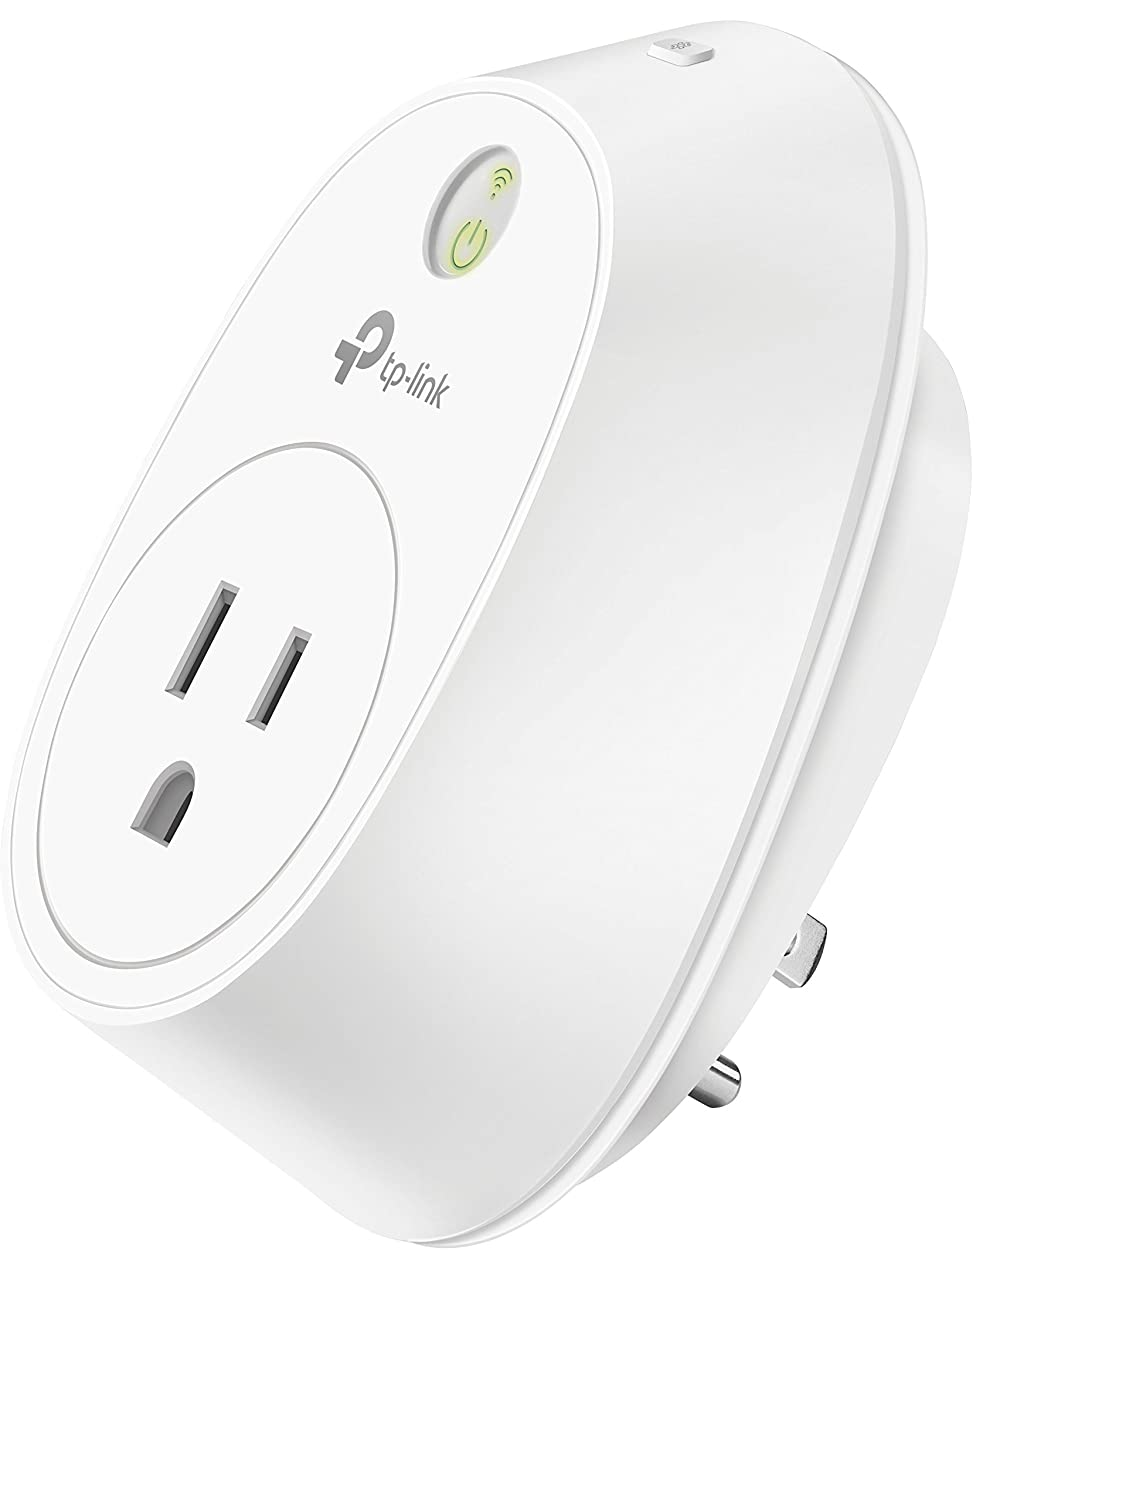 kasa smart wifi plug w energy monitoring by tp link reliable wifi No Wi-Fi kasa smart wifi plug w energy monitoring by tp link reliable wifi connection no hub required works with alexa echo assistant hs110